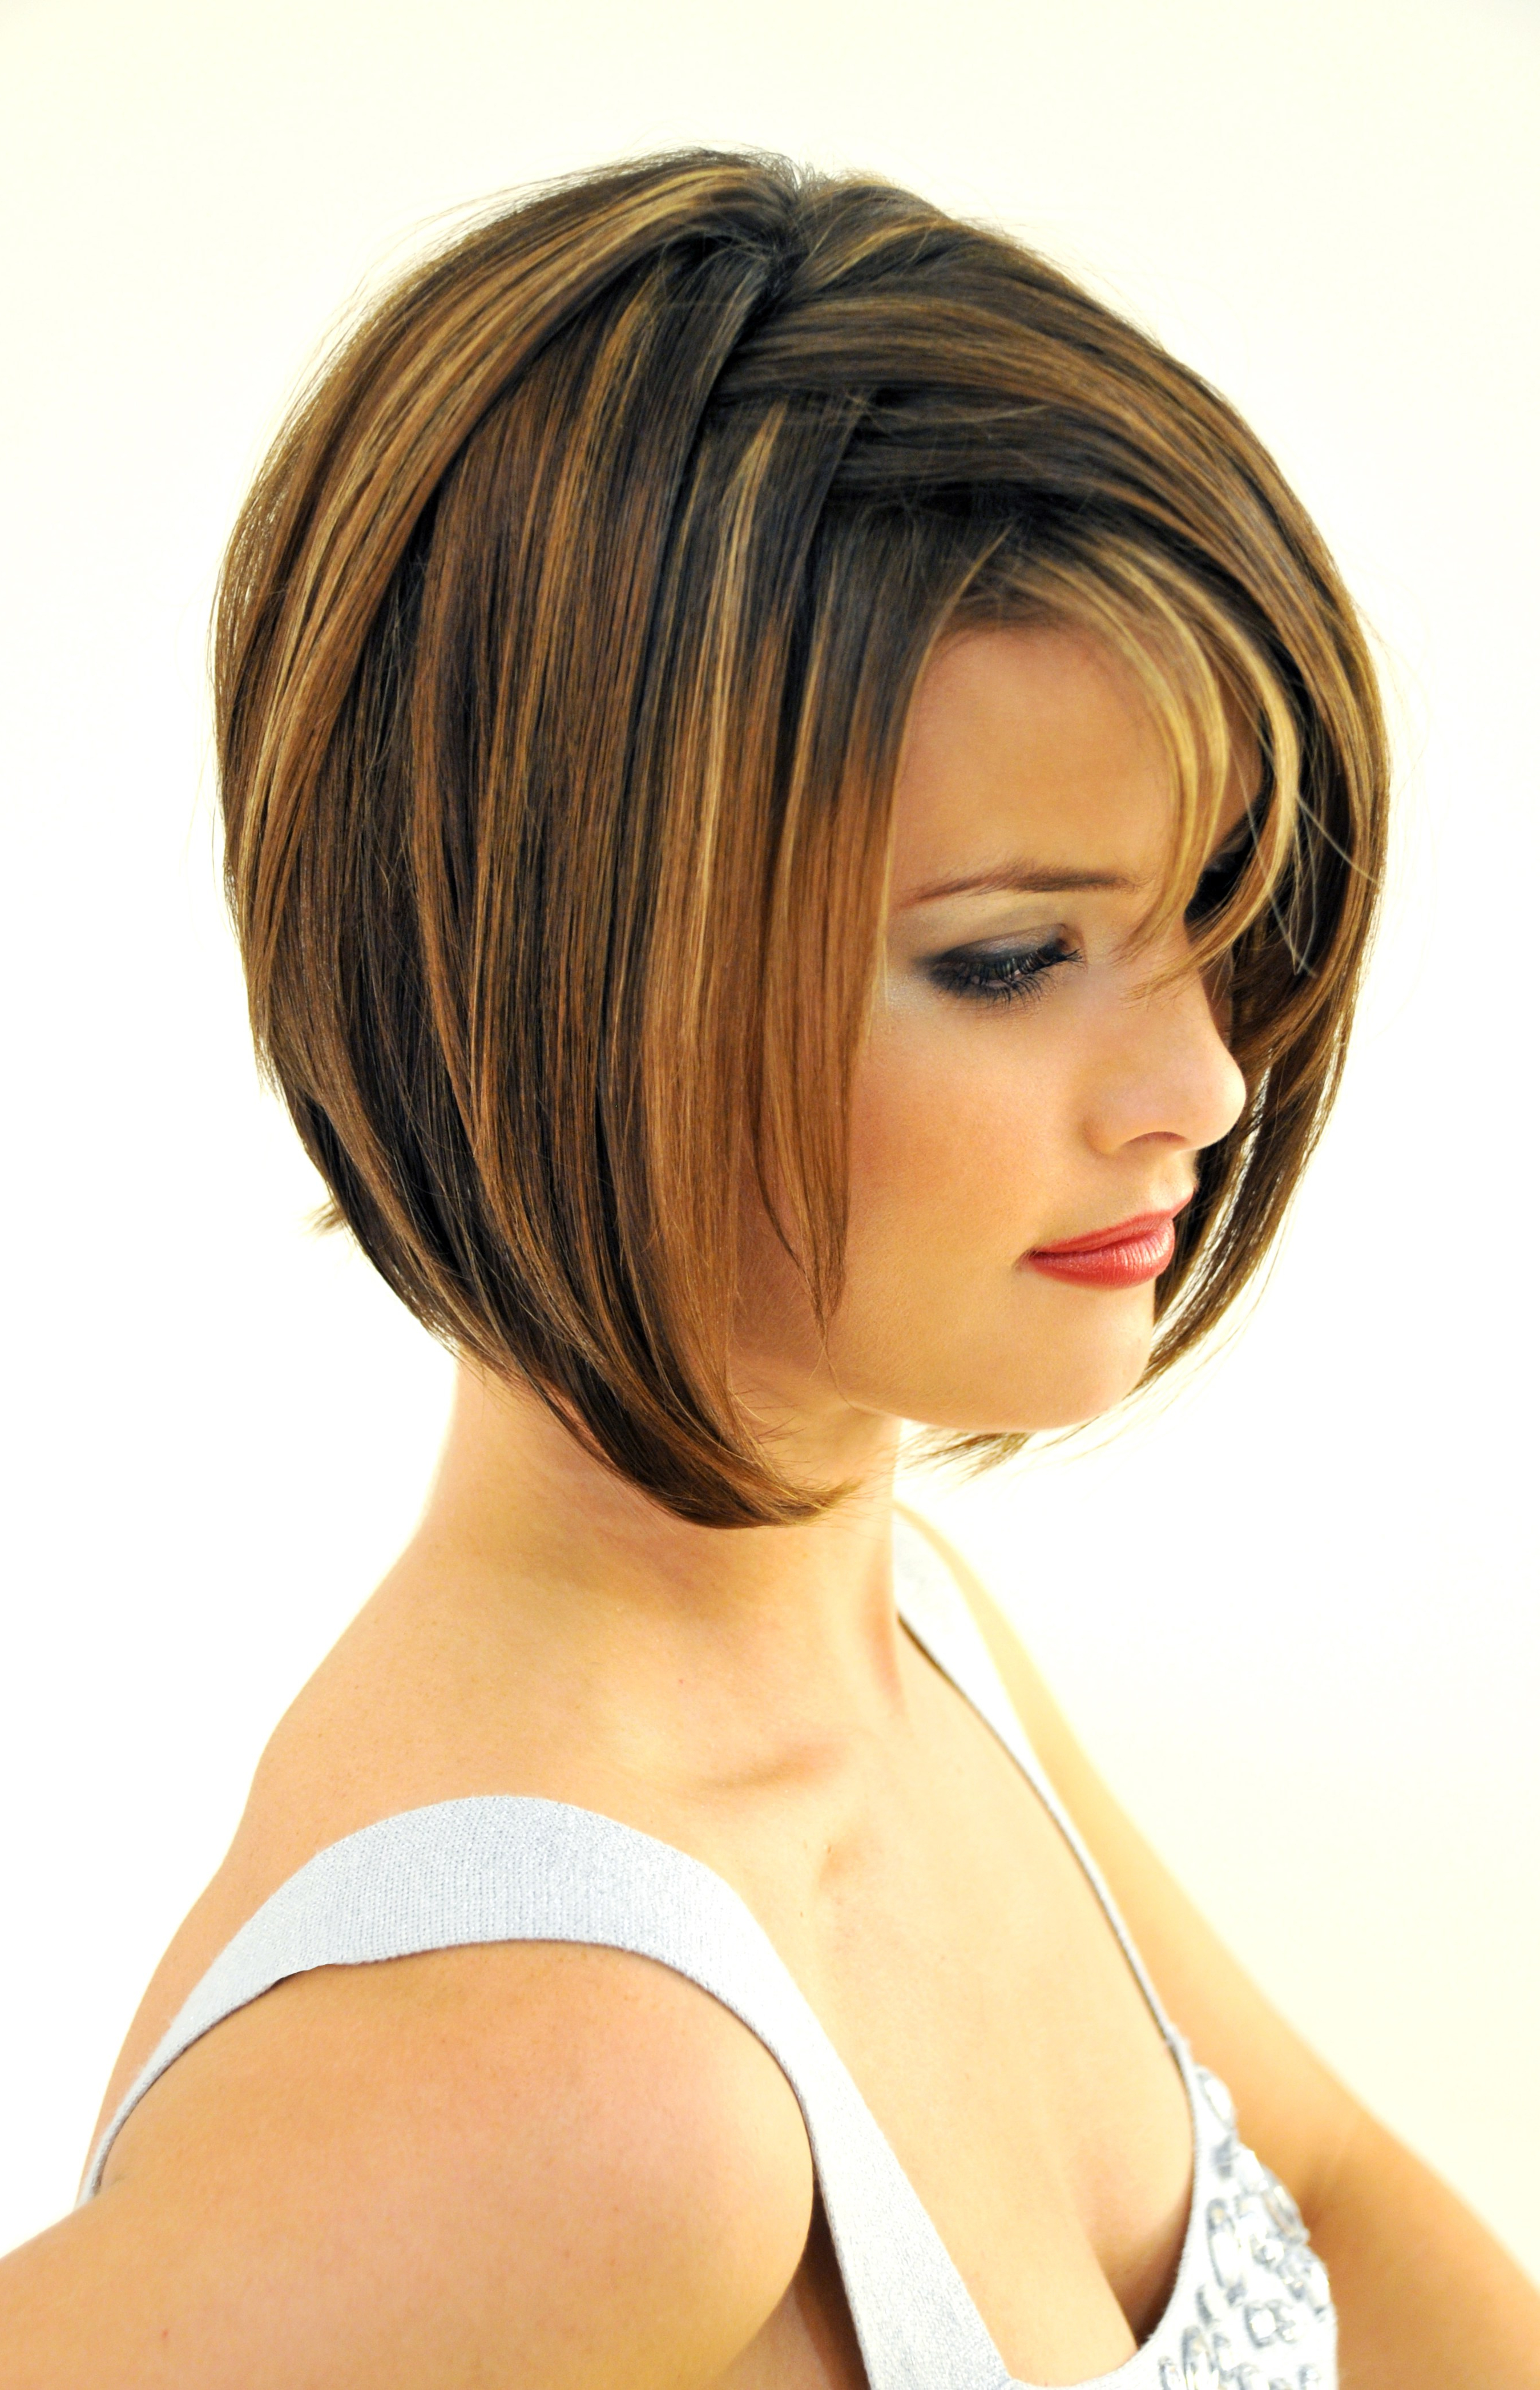 Short Haircuts With Bangs And Layers – Hairstyle For Women & Man Intended For Short Haircuts With Bangs And Layers (View 4 of 25)